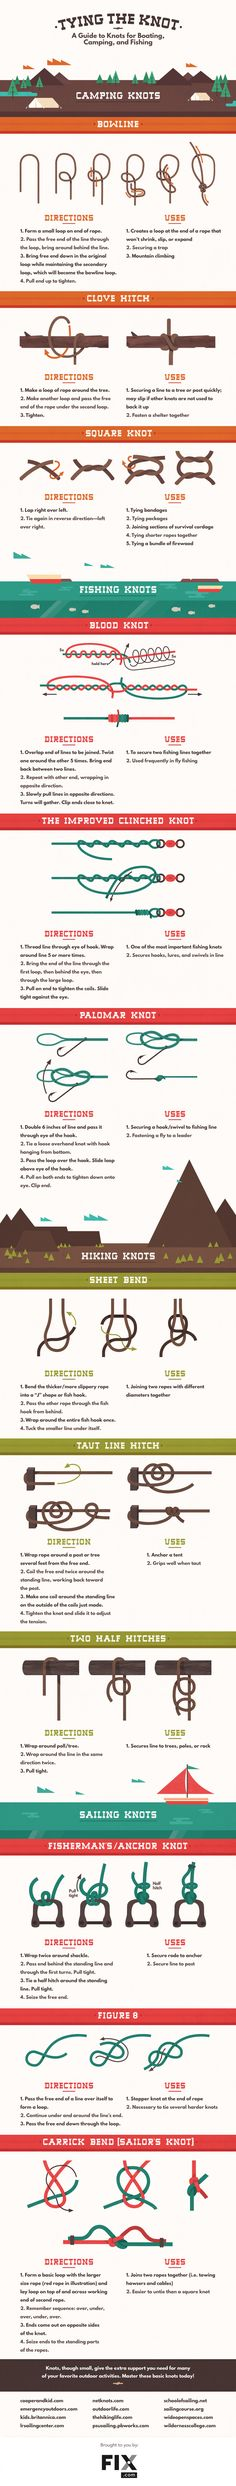 Tying the Knot A Guide to Tying Knots For Every Occasion #infographic ~ Visualistan